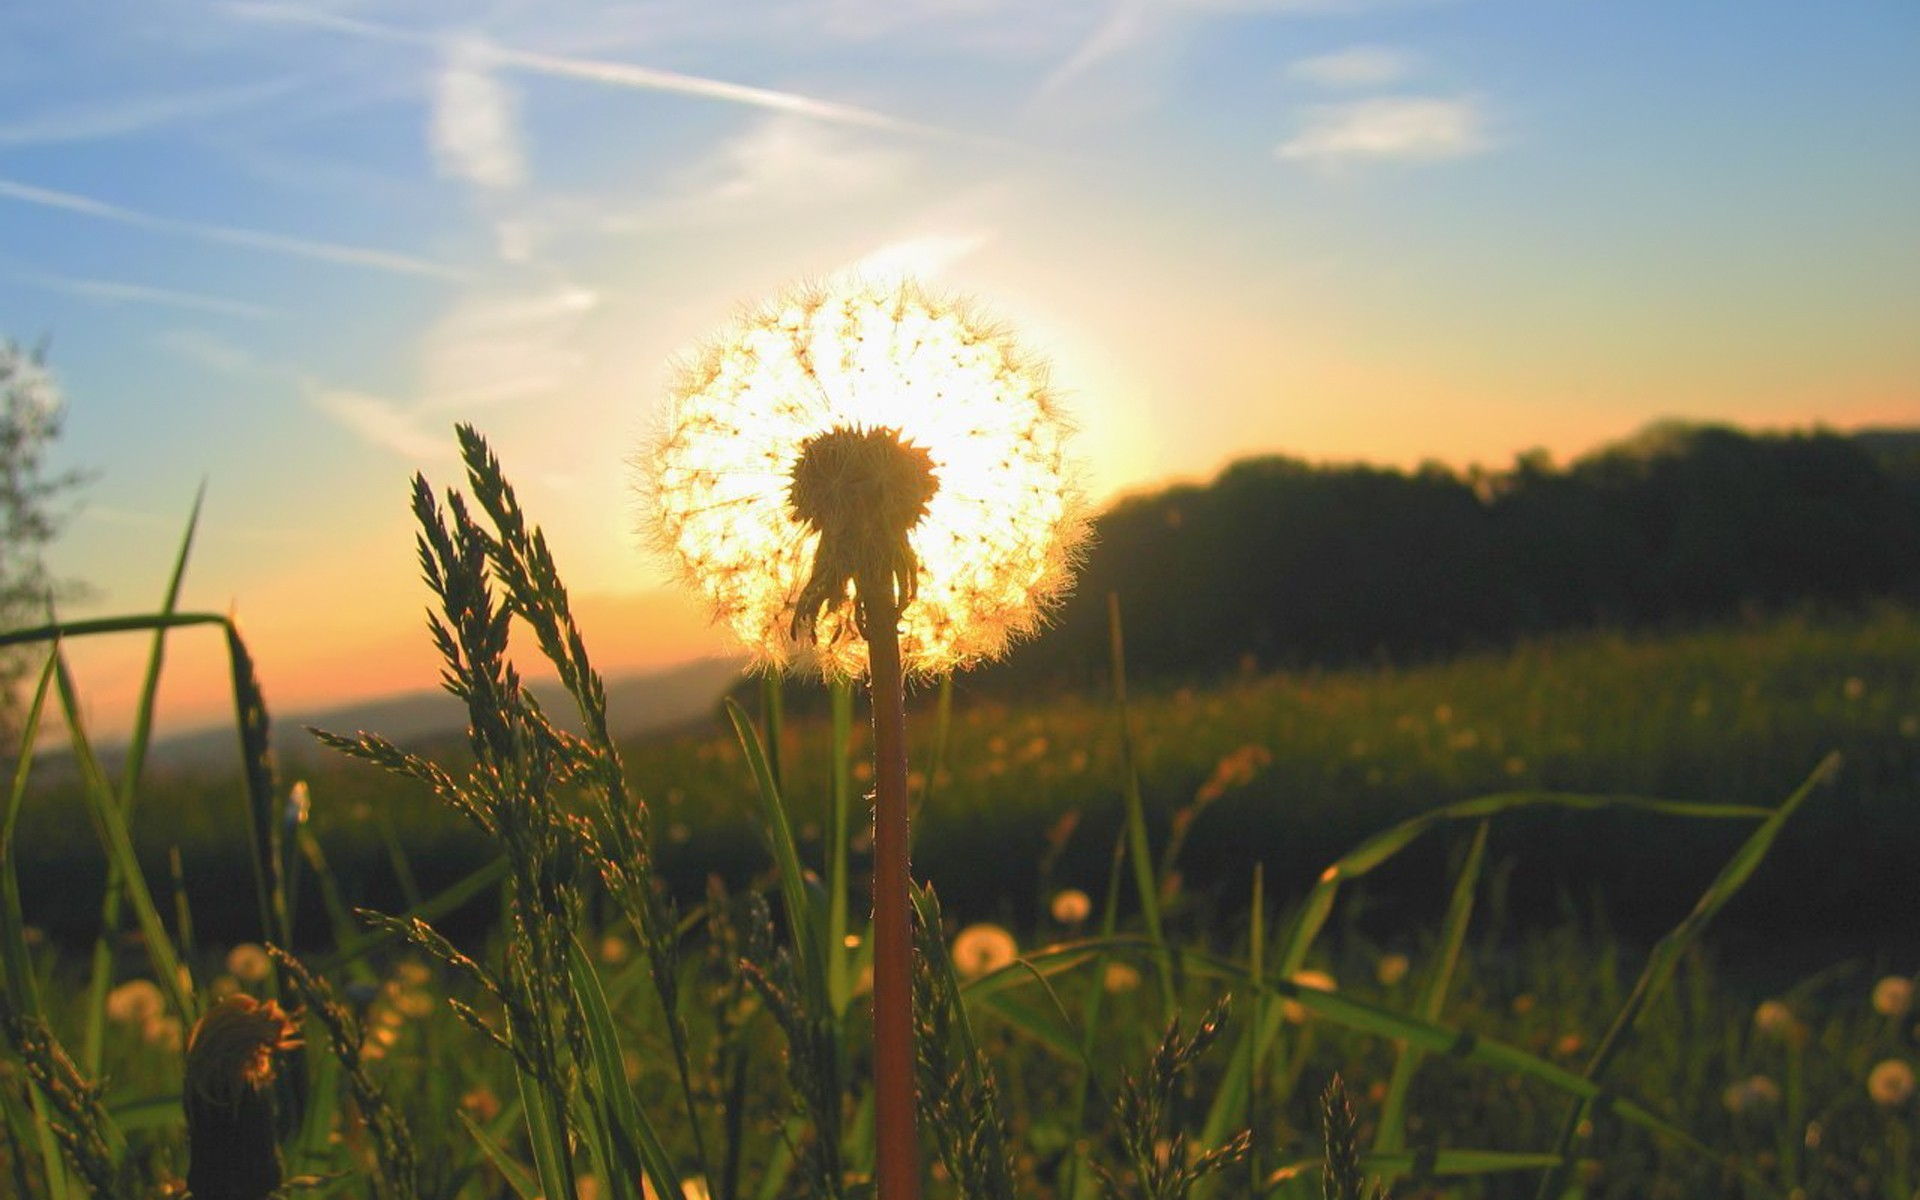 Sunrise behind the dandelion